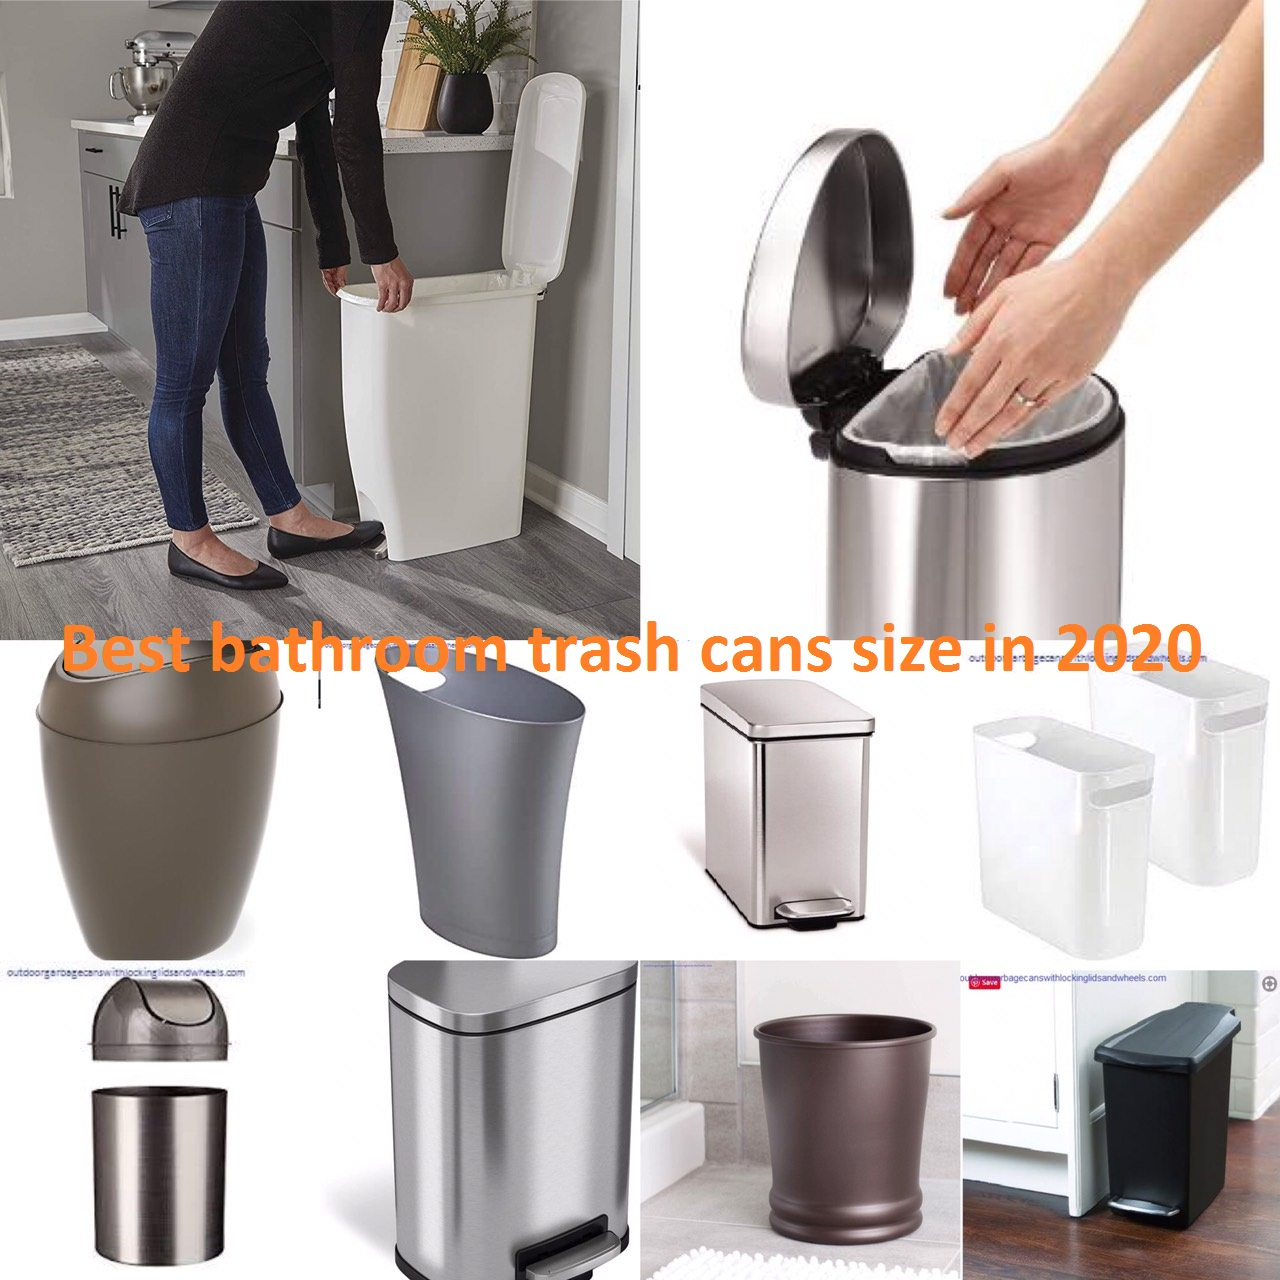 Top 10 Best Bathroom Trash Cans Size In 2020 Outdoor